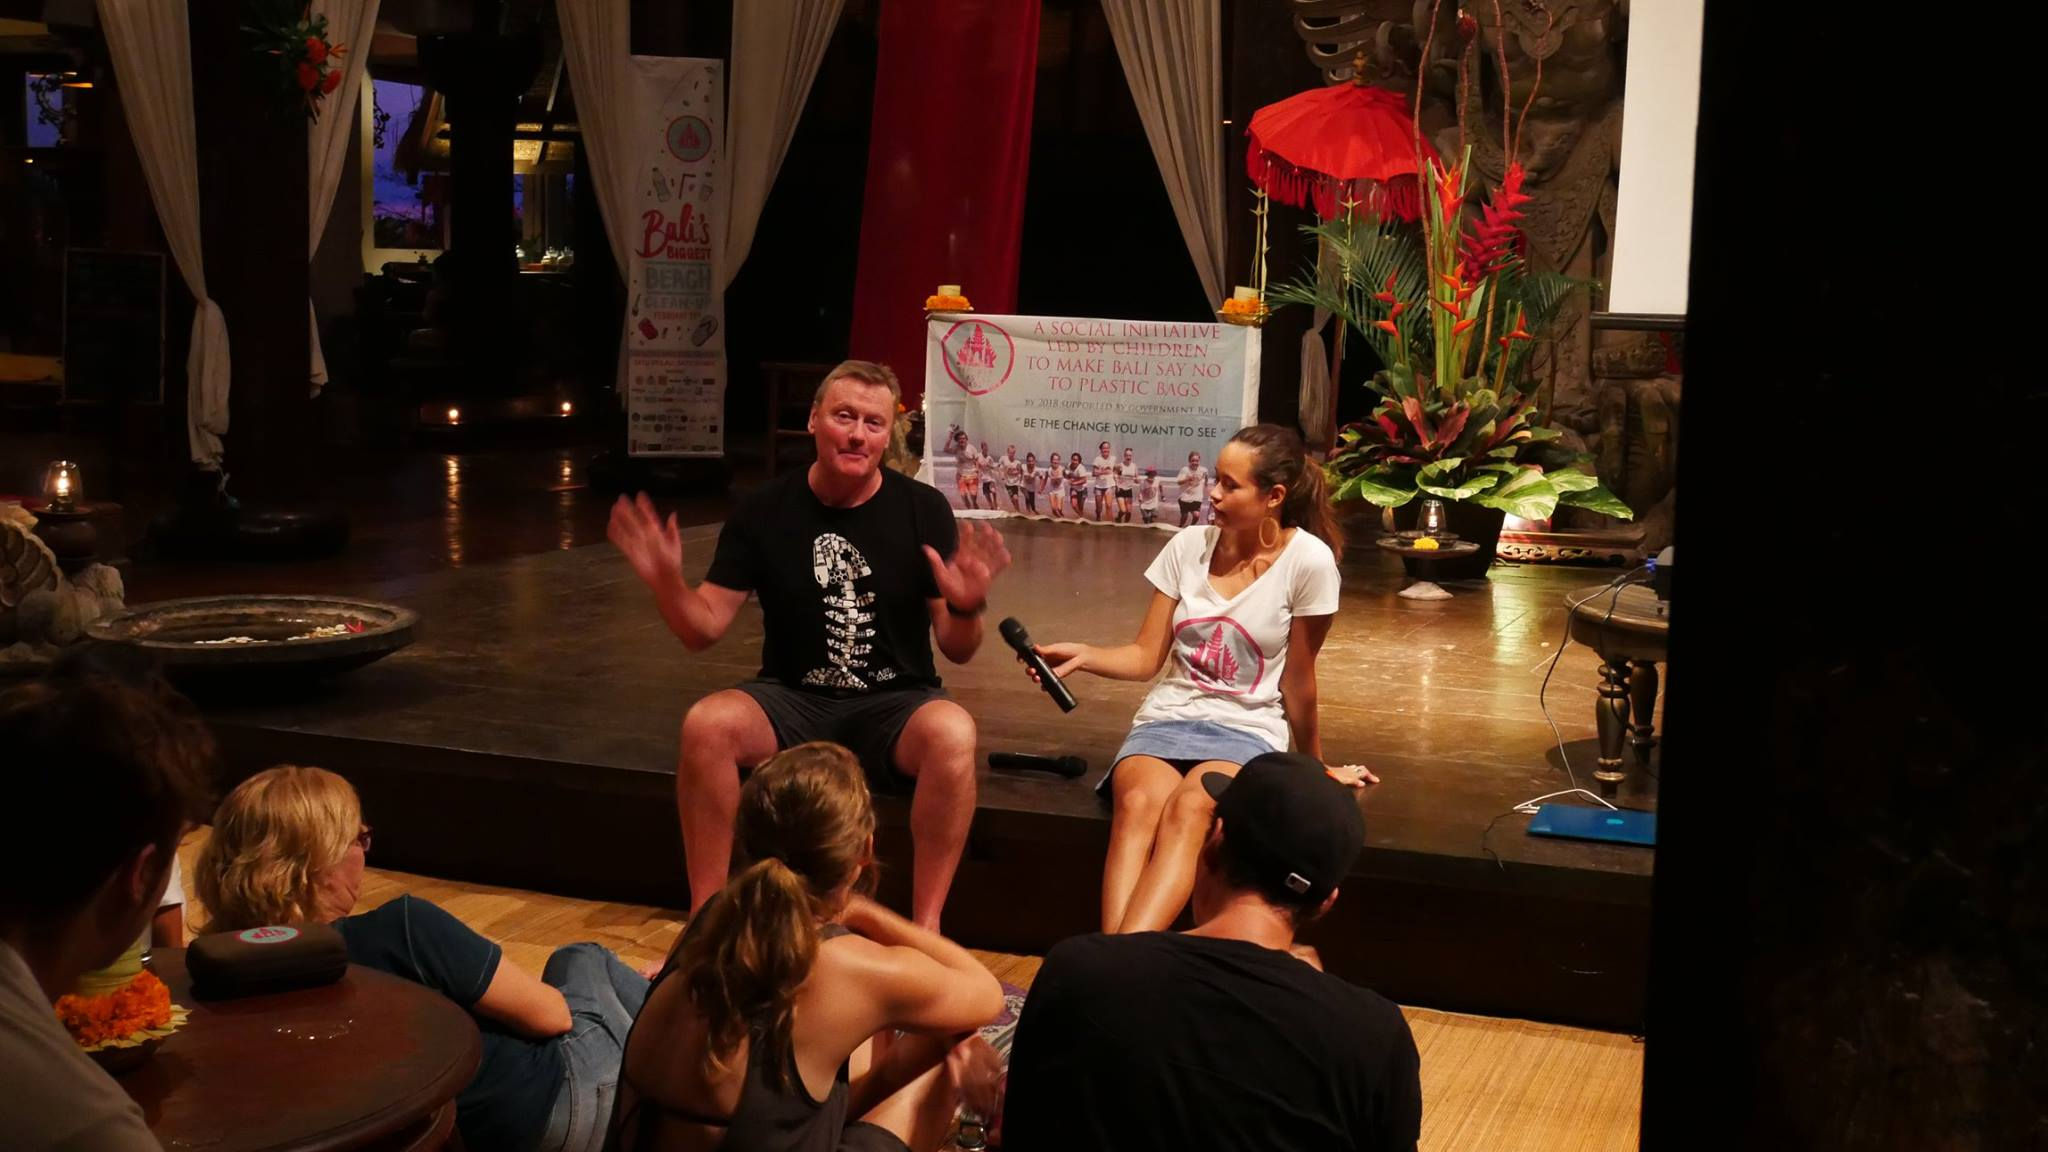 David Jones speaking in Bali